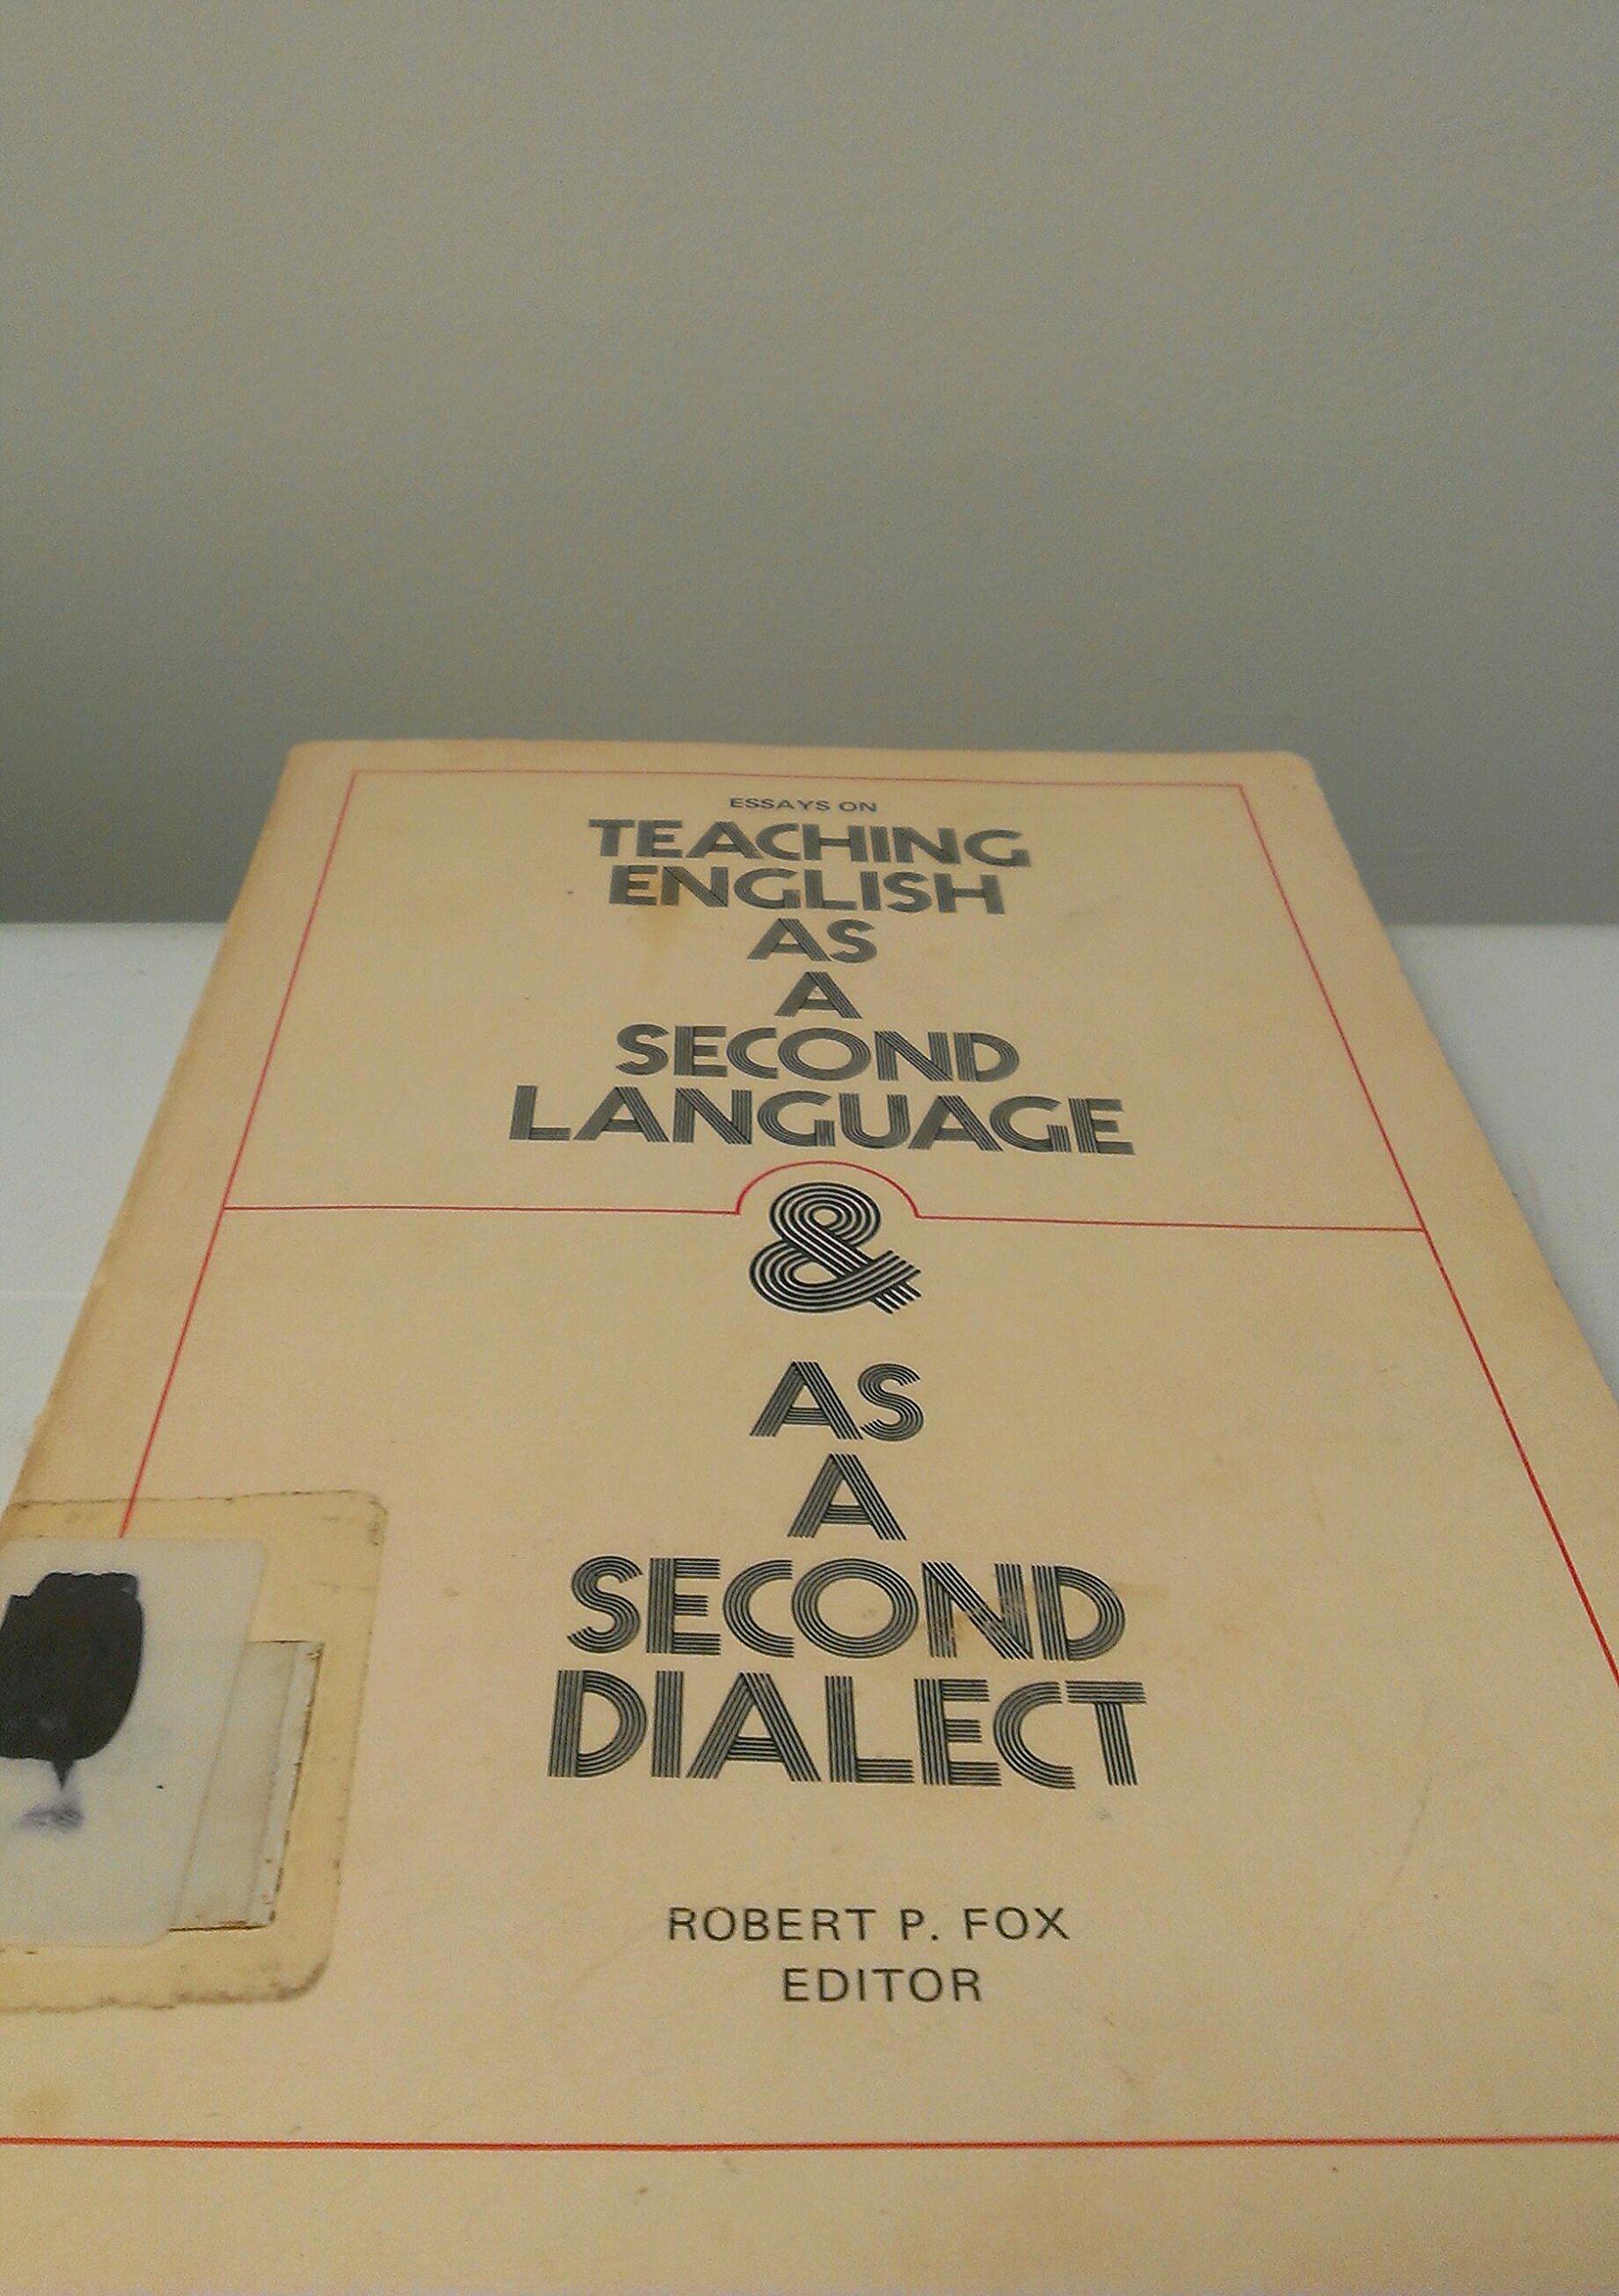 first edition of essays on teaching english as a second language  first edition of essays on teaching english as a second language  as a  second dialect editorrobert fox paperback